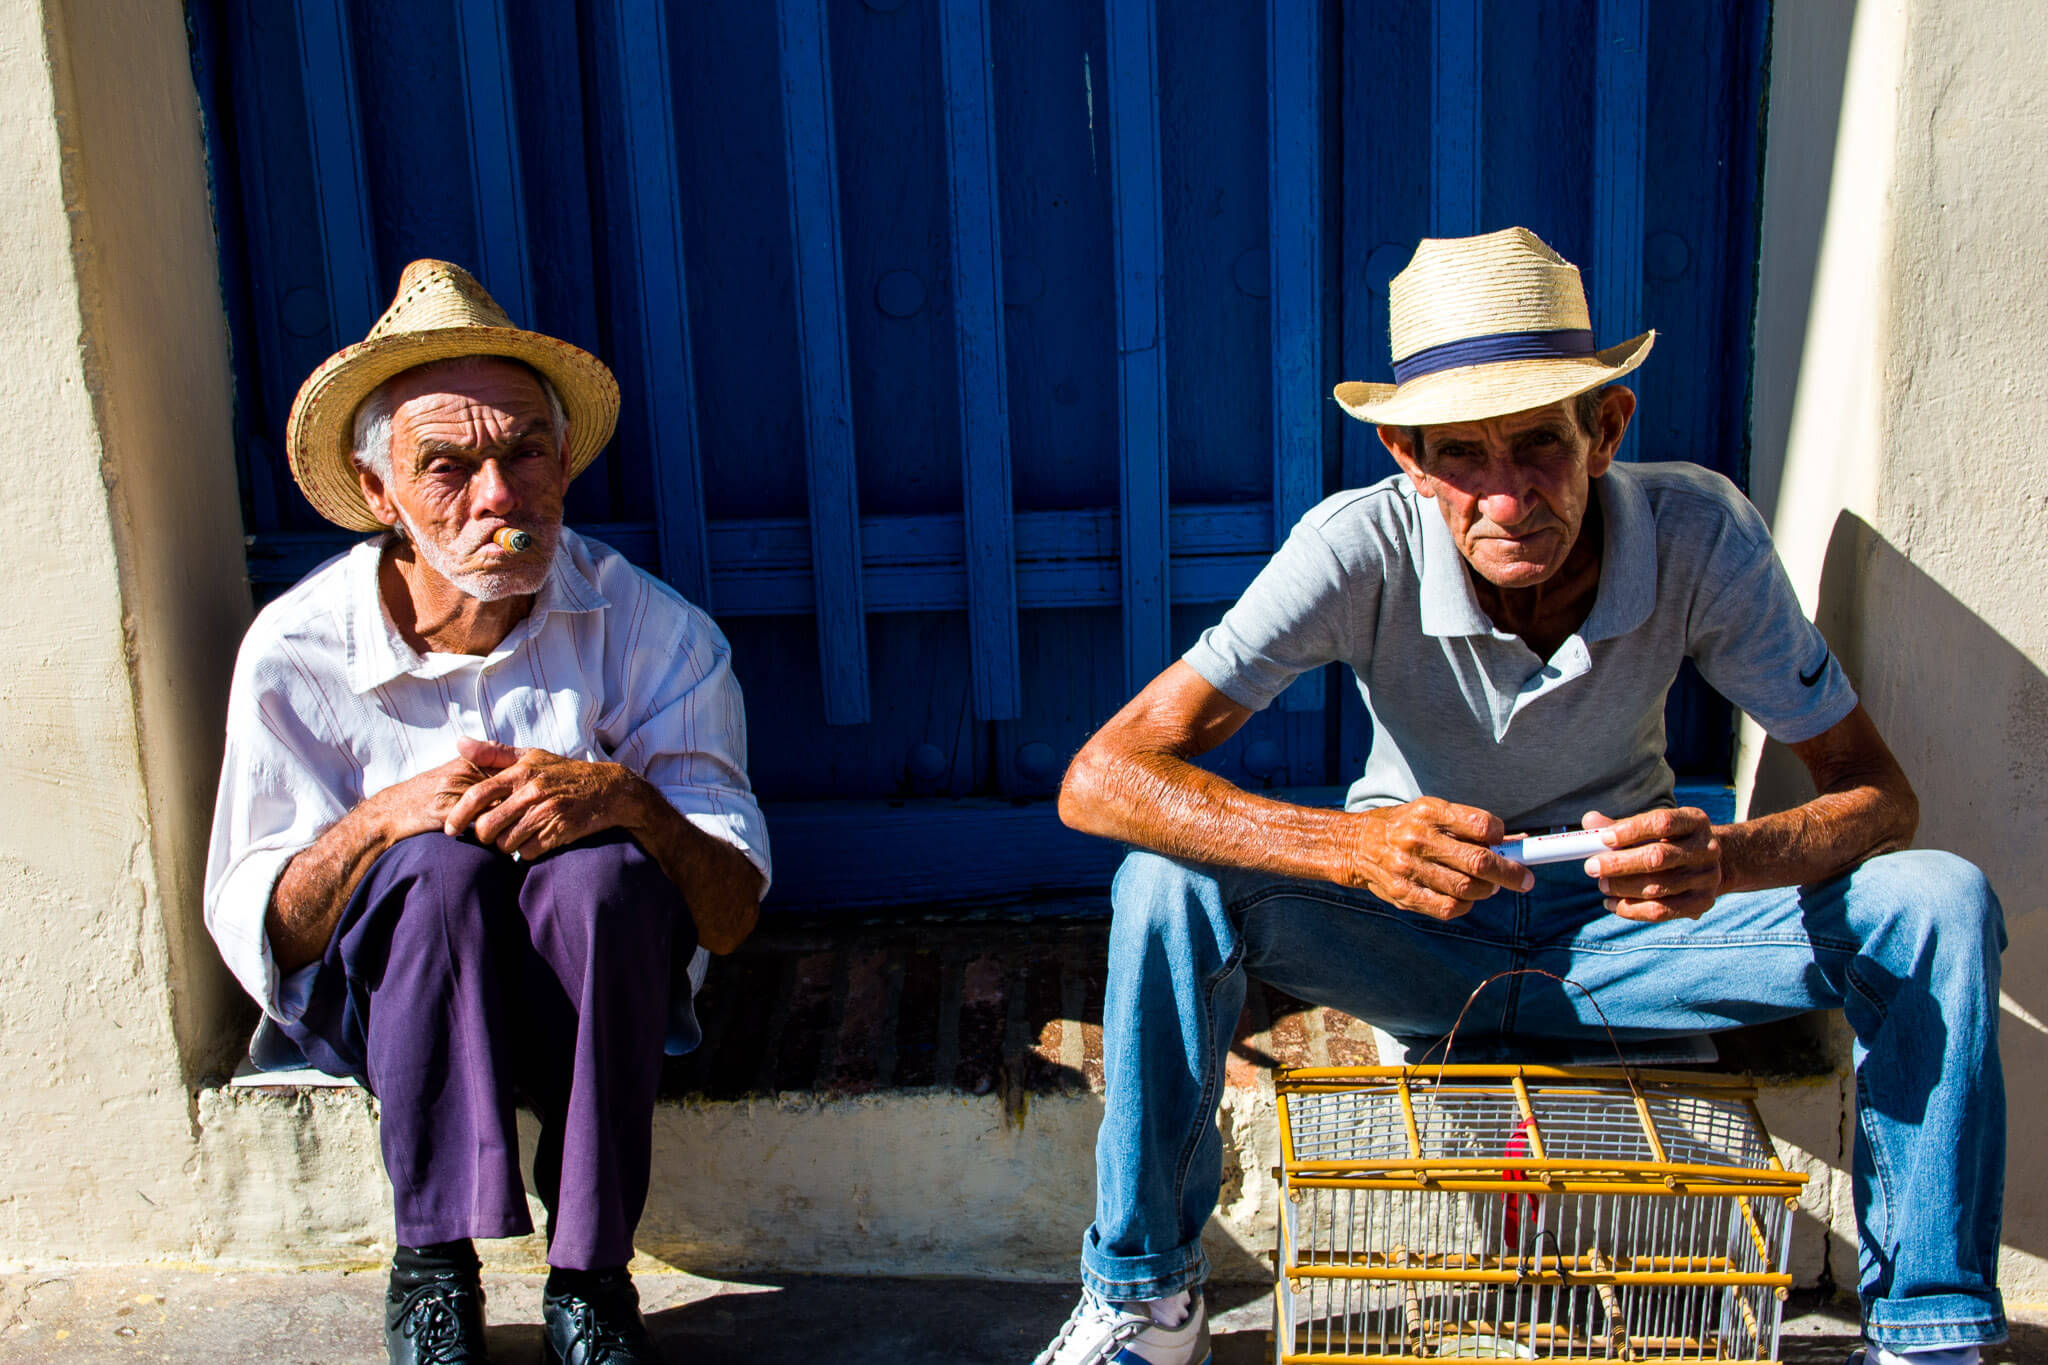 A couple of Cuban gentlemen in Trinidad